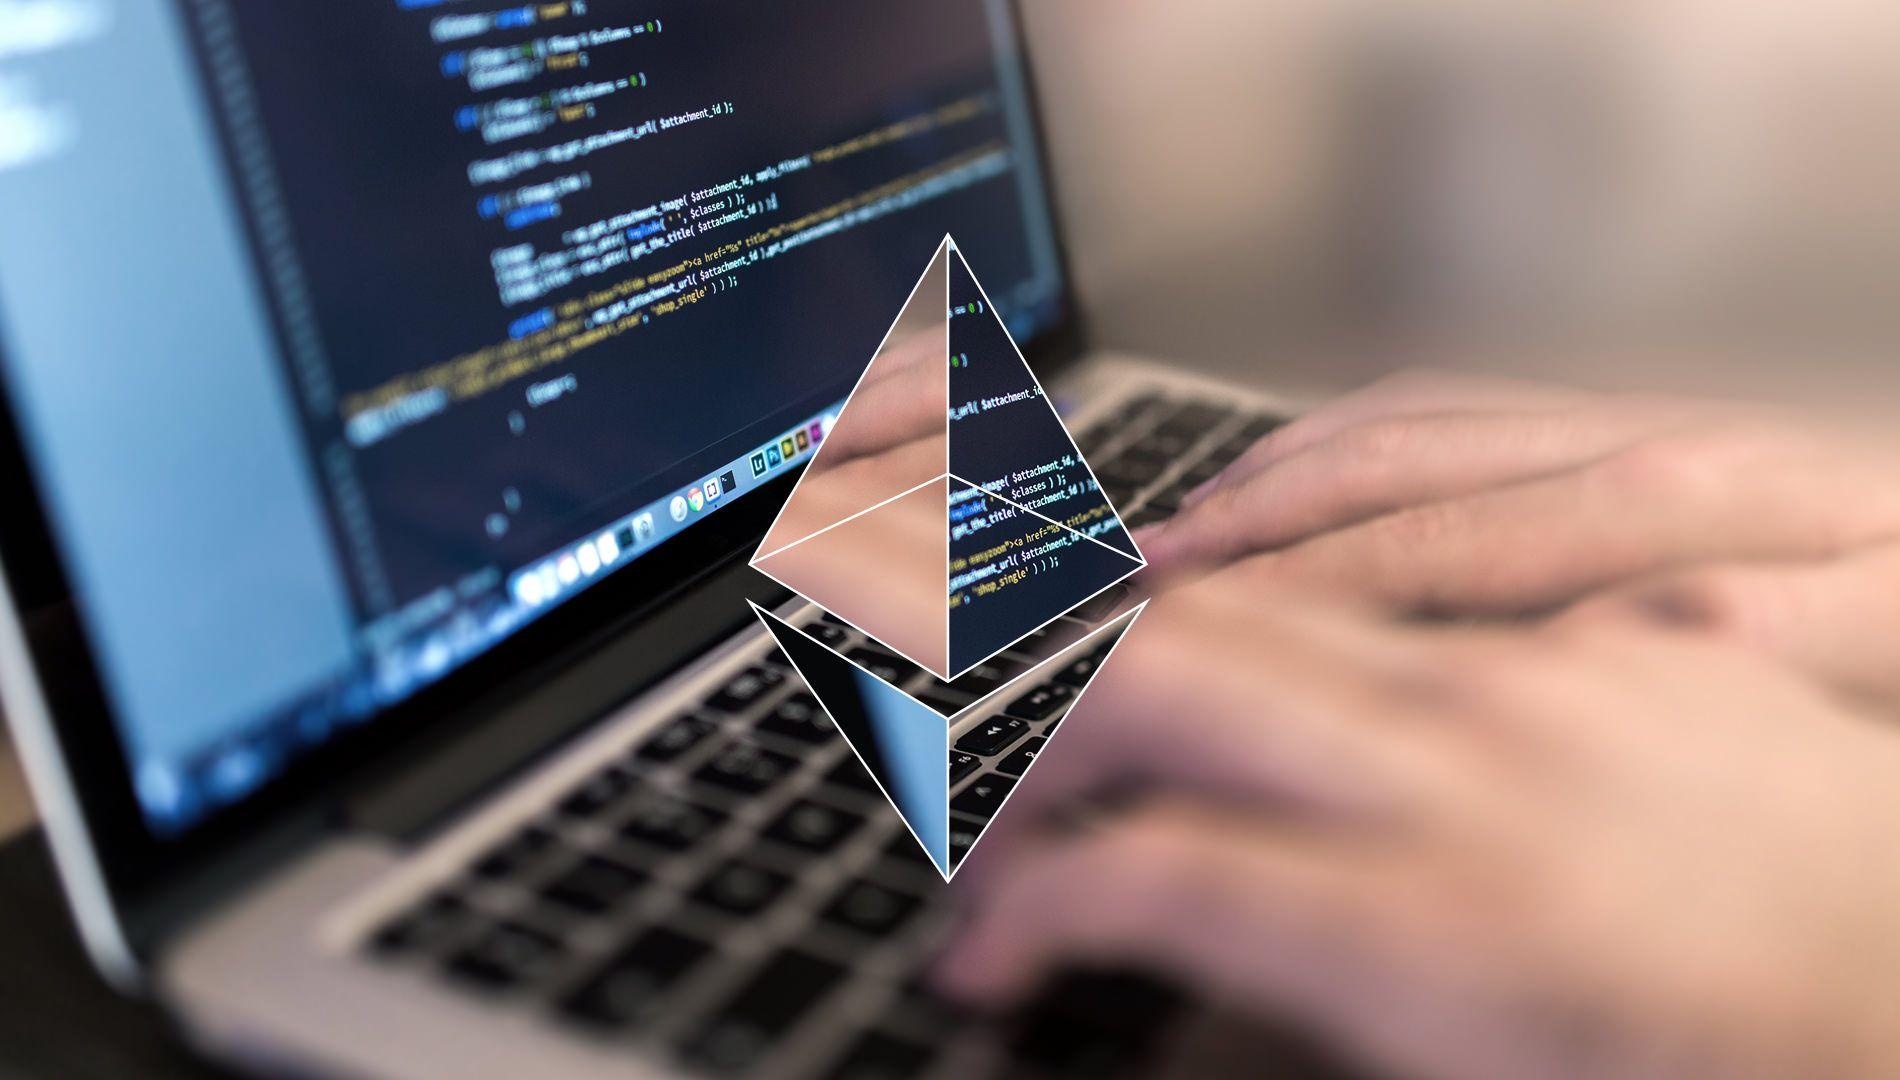 Ethereum Foundation Funds Columbia, Yale Researchers' Work on Smart Contract Language